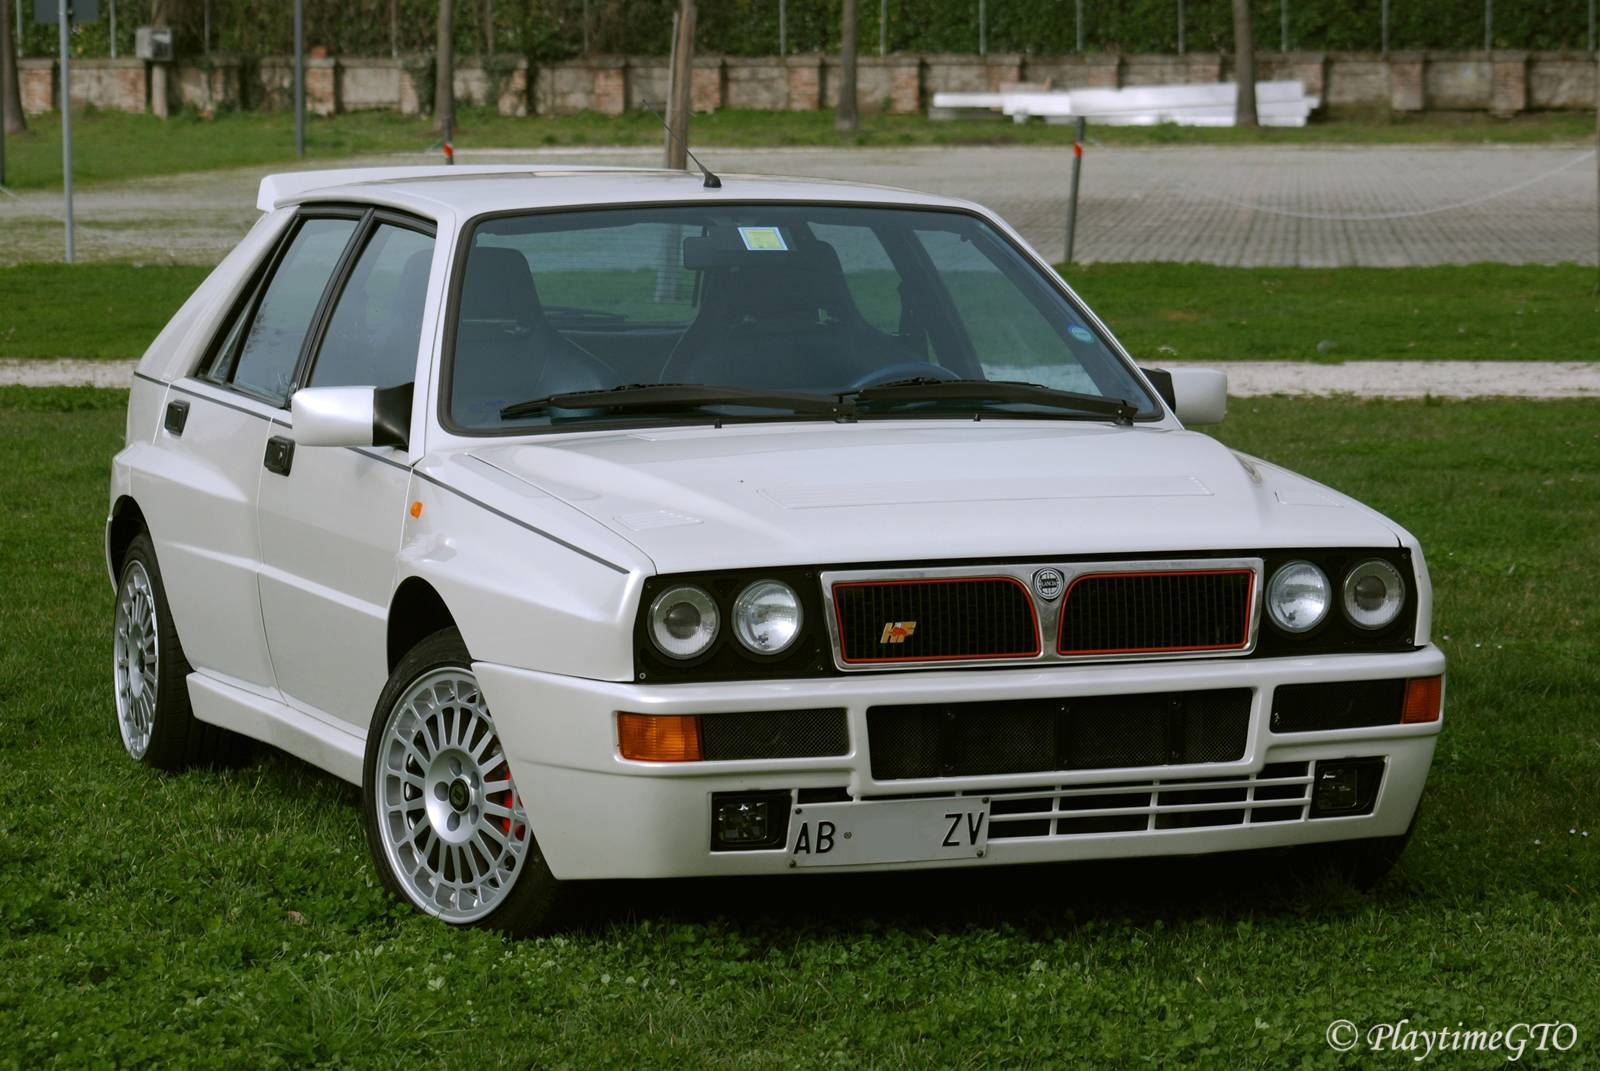 remarkable cars lancia delta integrale evoluzione gtspirit. Black Bedroom Furniture Sets. Home Design Ideas